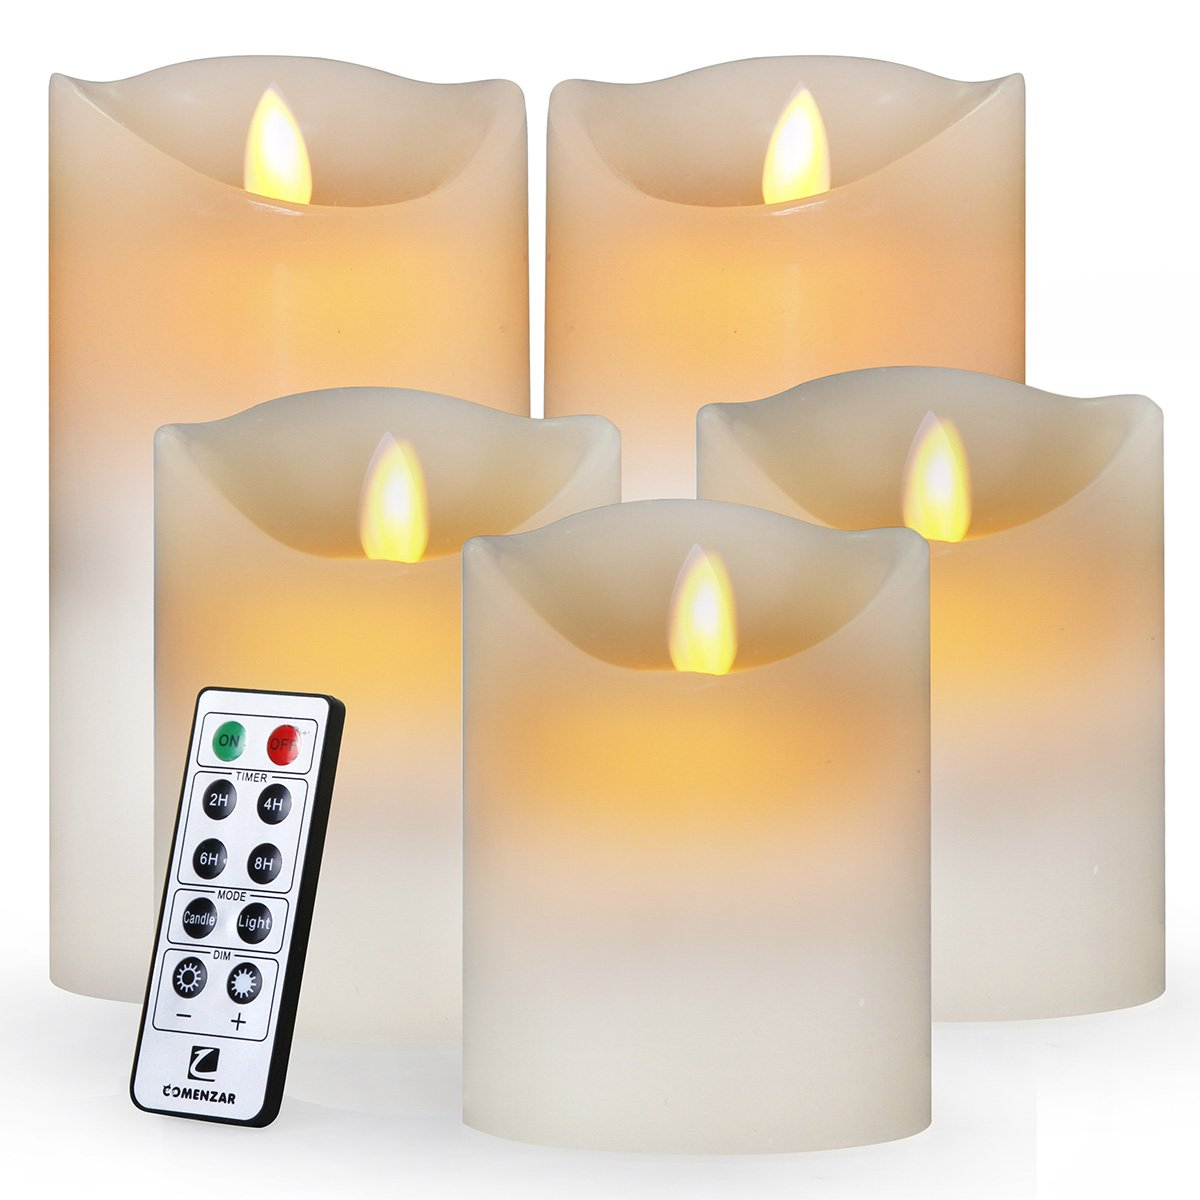 Flameless Candles LED Candles Realistic Moving Set of 5 Battery Candles Real Wax Pillar with 10-key Remote Control Timer Candle Flameless - 2/4/6/8 Hours Timer comenzar BLC-046